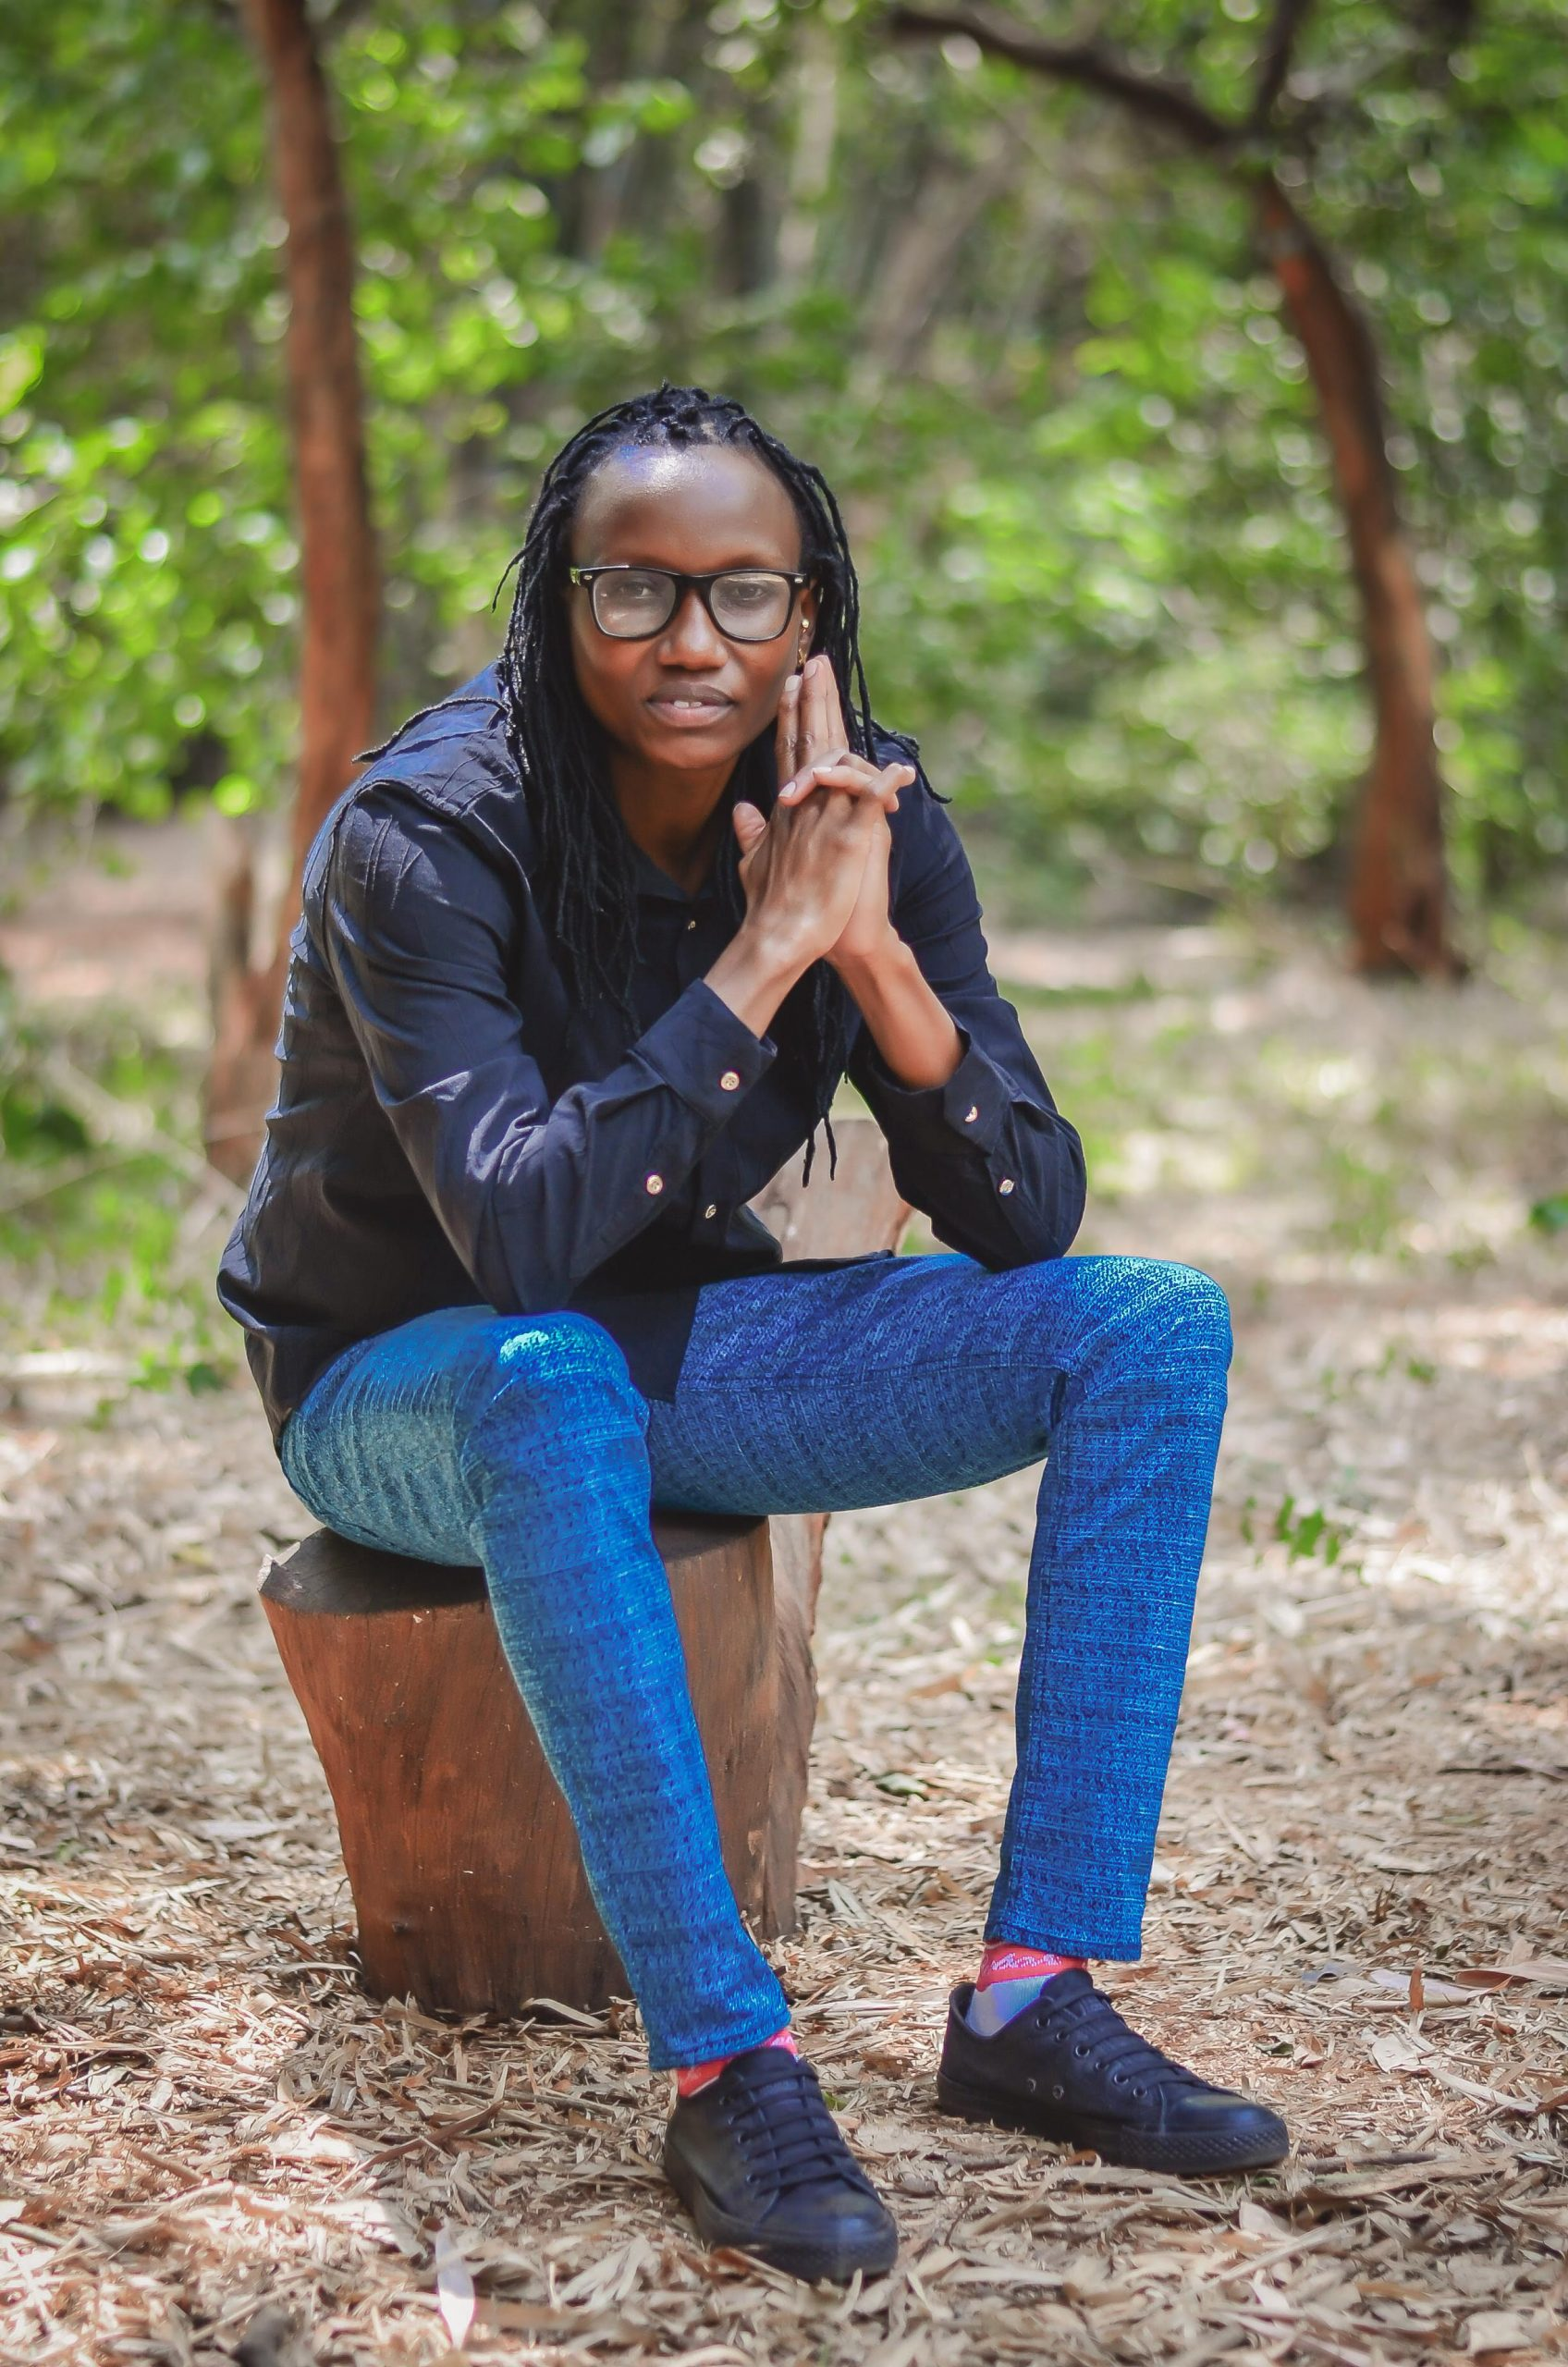 Meet the New Face of LGBTQIA+ Spoken word poetry, Hip Hop, and Rap: Grammo Suspect-Rainbow Ambassador Kenya is Bringing the Revolution through the Power of Her Music